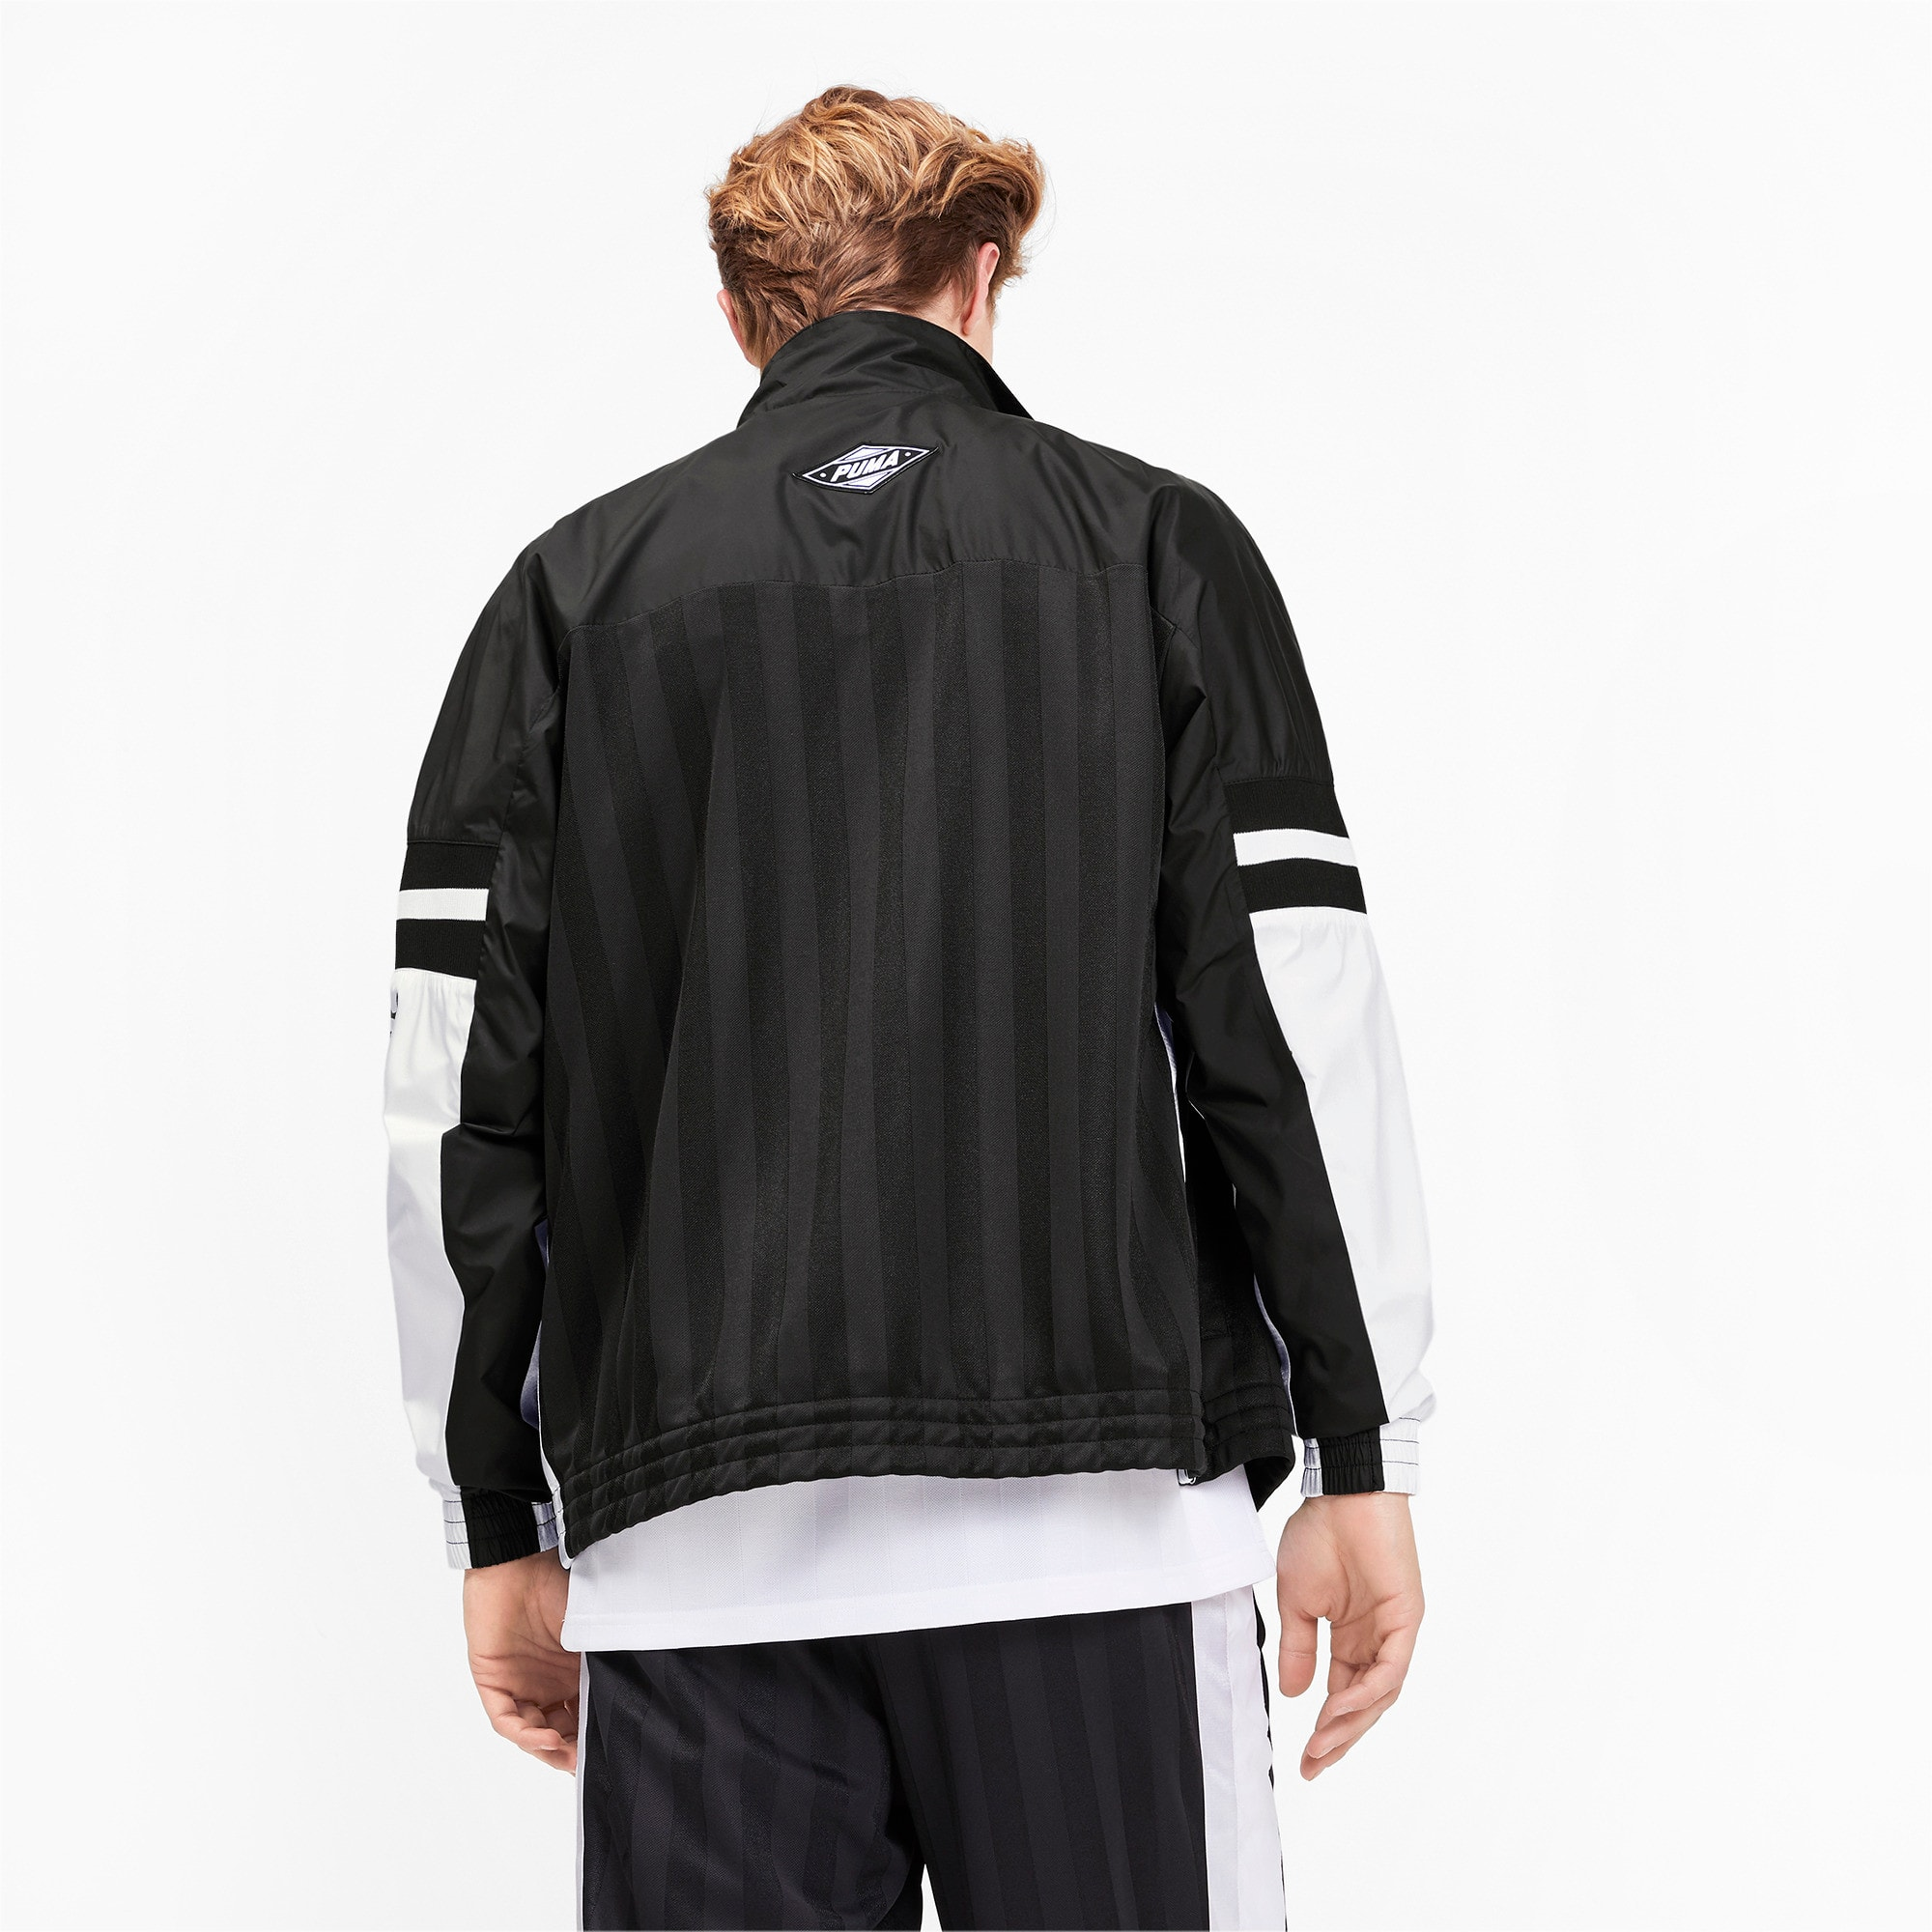 Thumbnail 3 of luXTG Men's Woven Jacket, Puma Black, medium